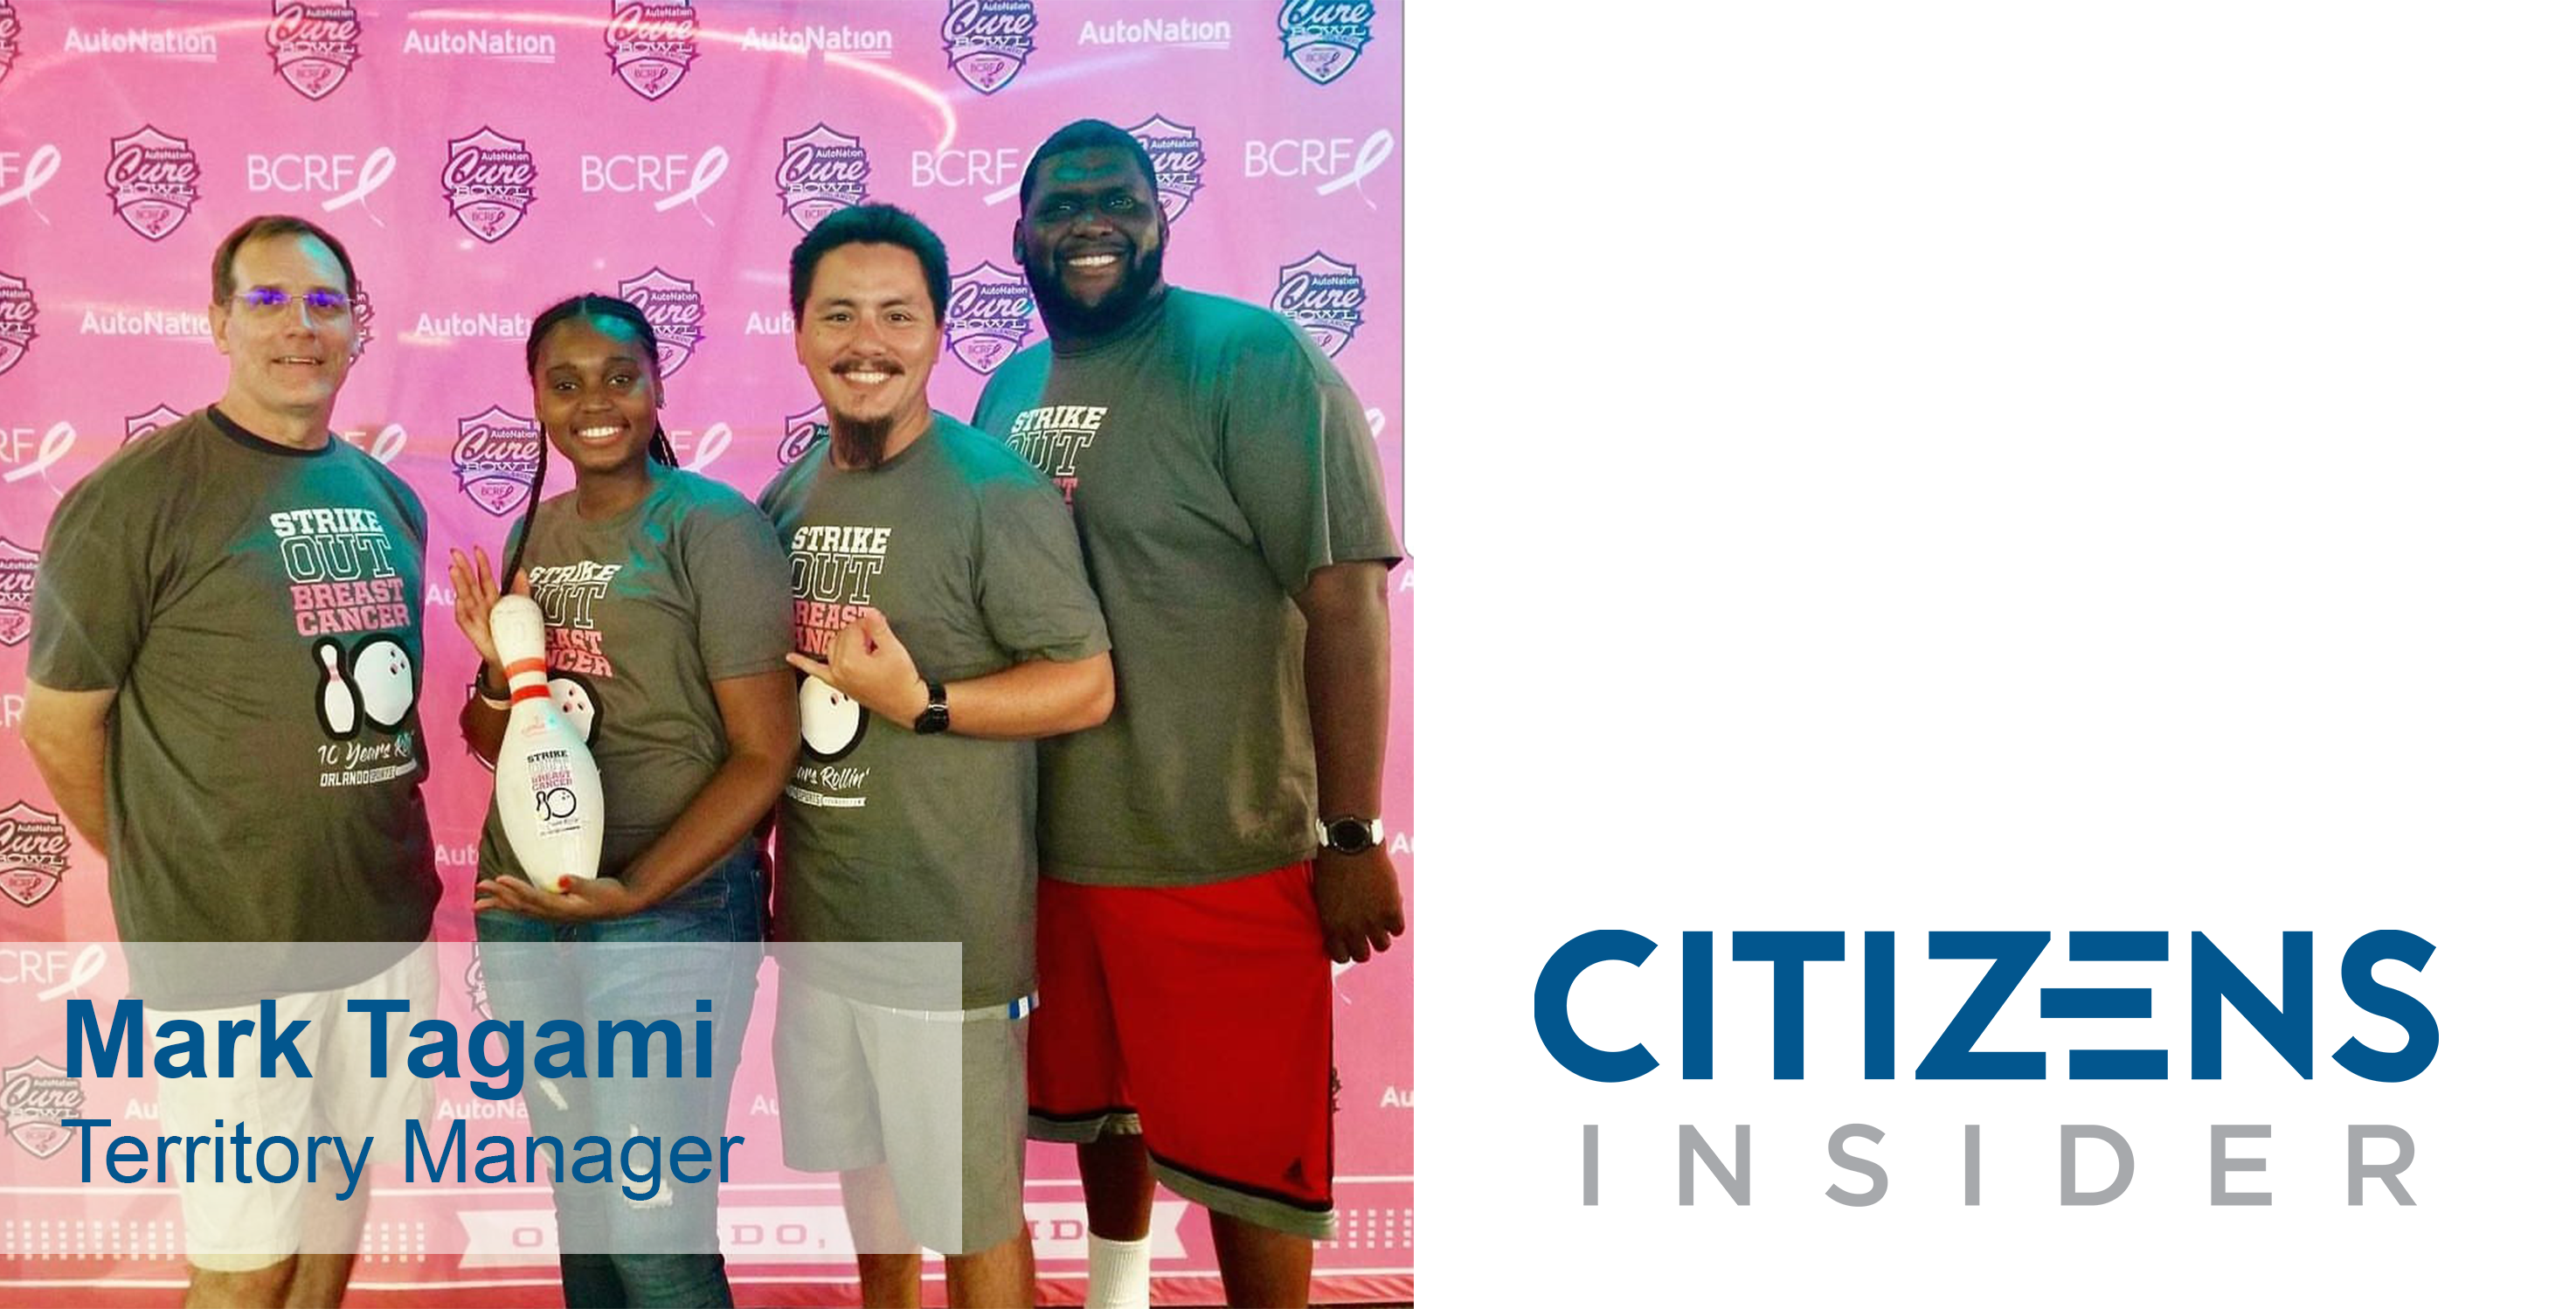 Citizens Insider: Mark Tagami